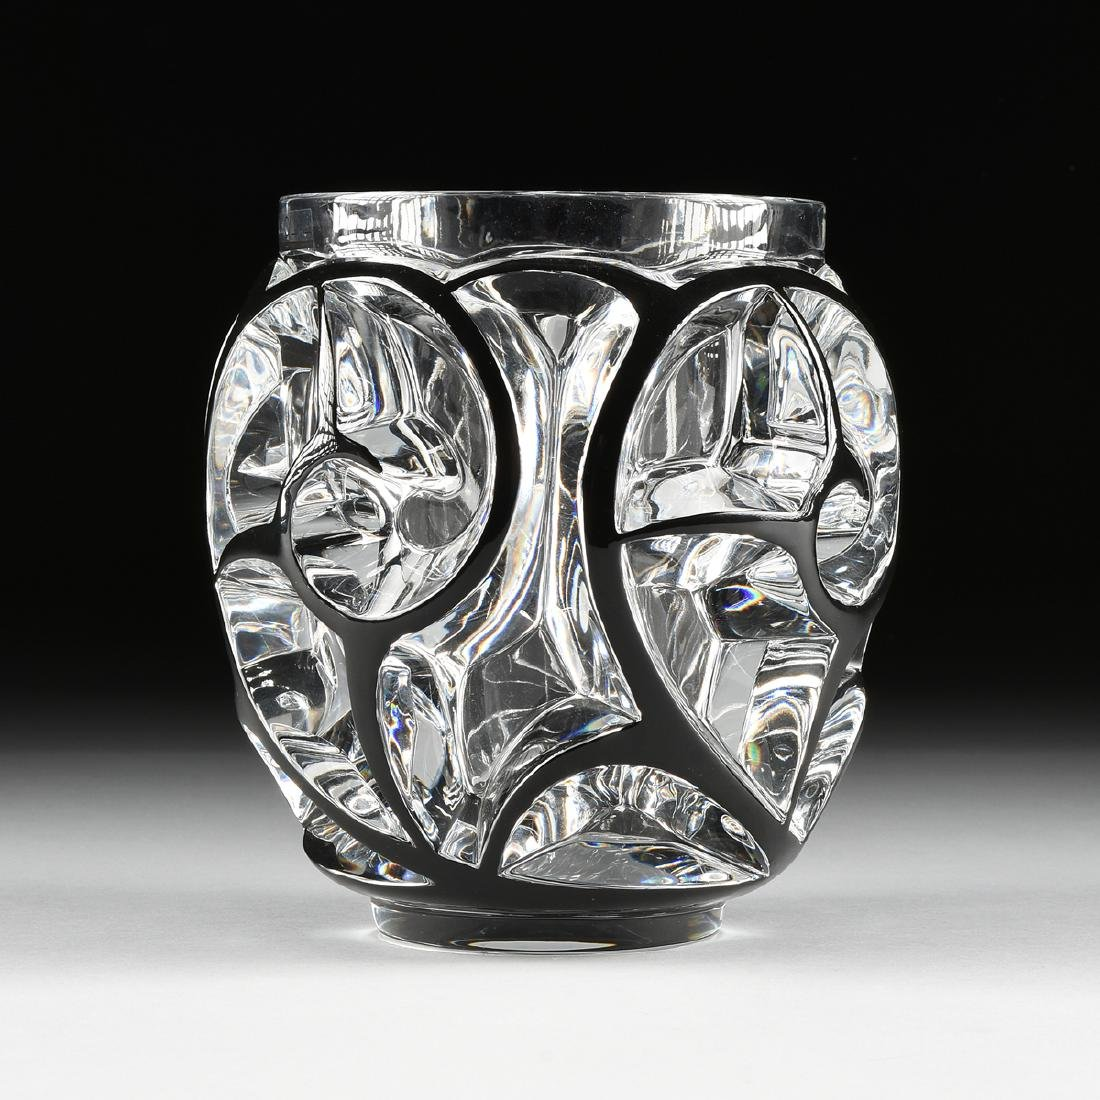 RENE LALIQUE (French 1860-1945) A LIMITED EDITION CASED - 2